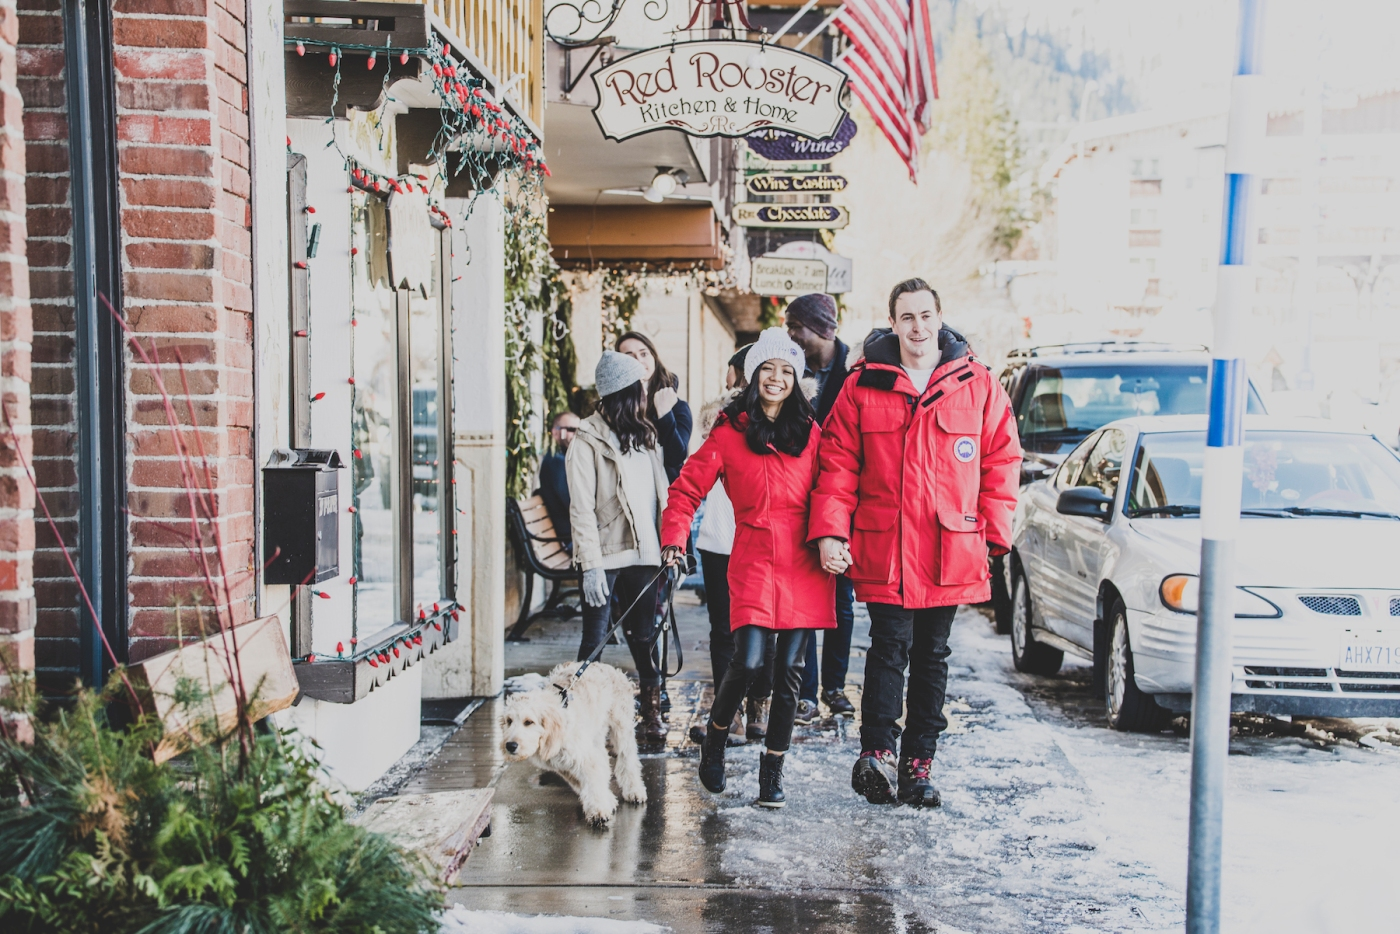 leavenworth_elopement_by_jane_speleers_photography_seattle_photographer_2017_winter_snow_joy_and_jason_rendezvous_ranch_cashmere_leavenworth_nahahum_canyon_all_rights_reserveddsc_9515